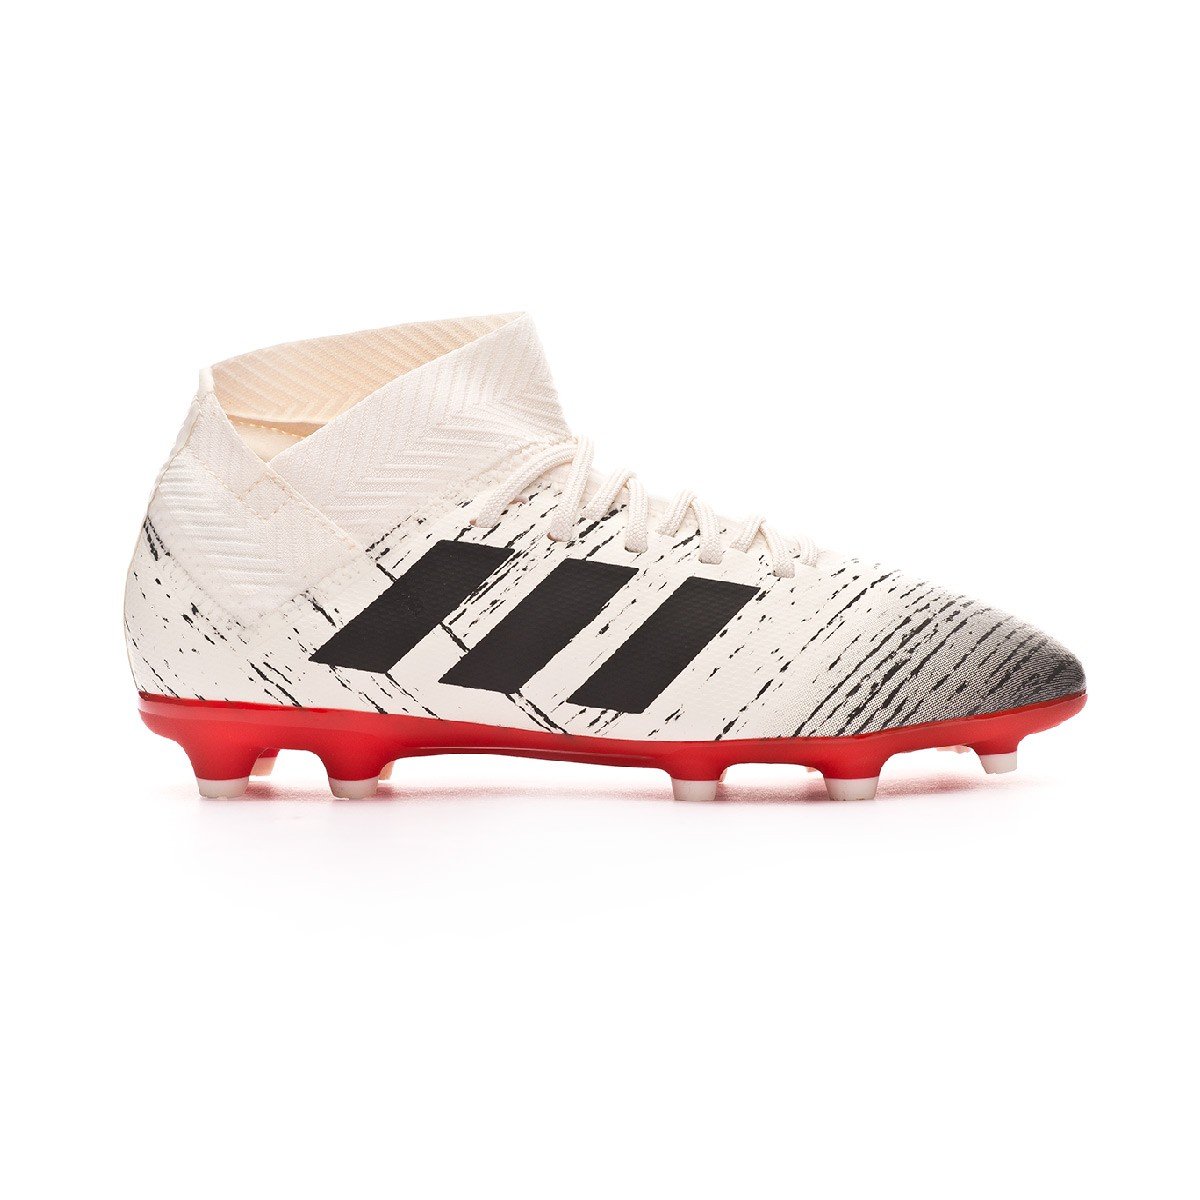 ... 18.3 FG Niño Off white-Core black-Active red. CATEGORY. Football boots  · adidas football boots 547ae51efc3da